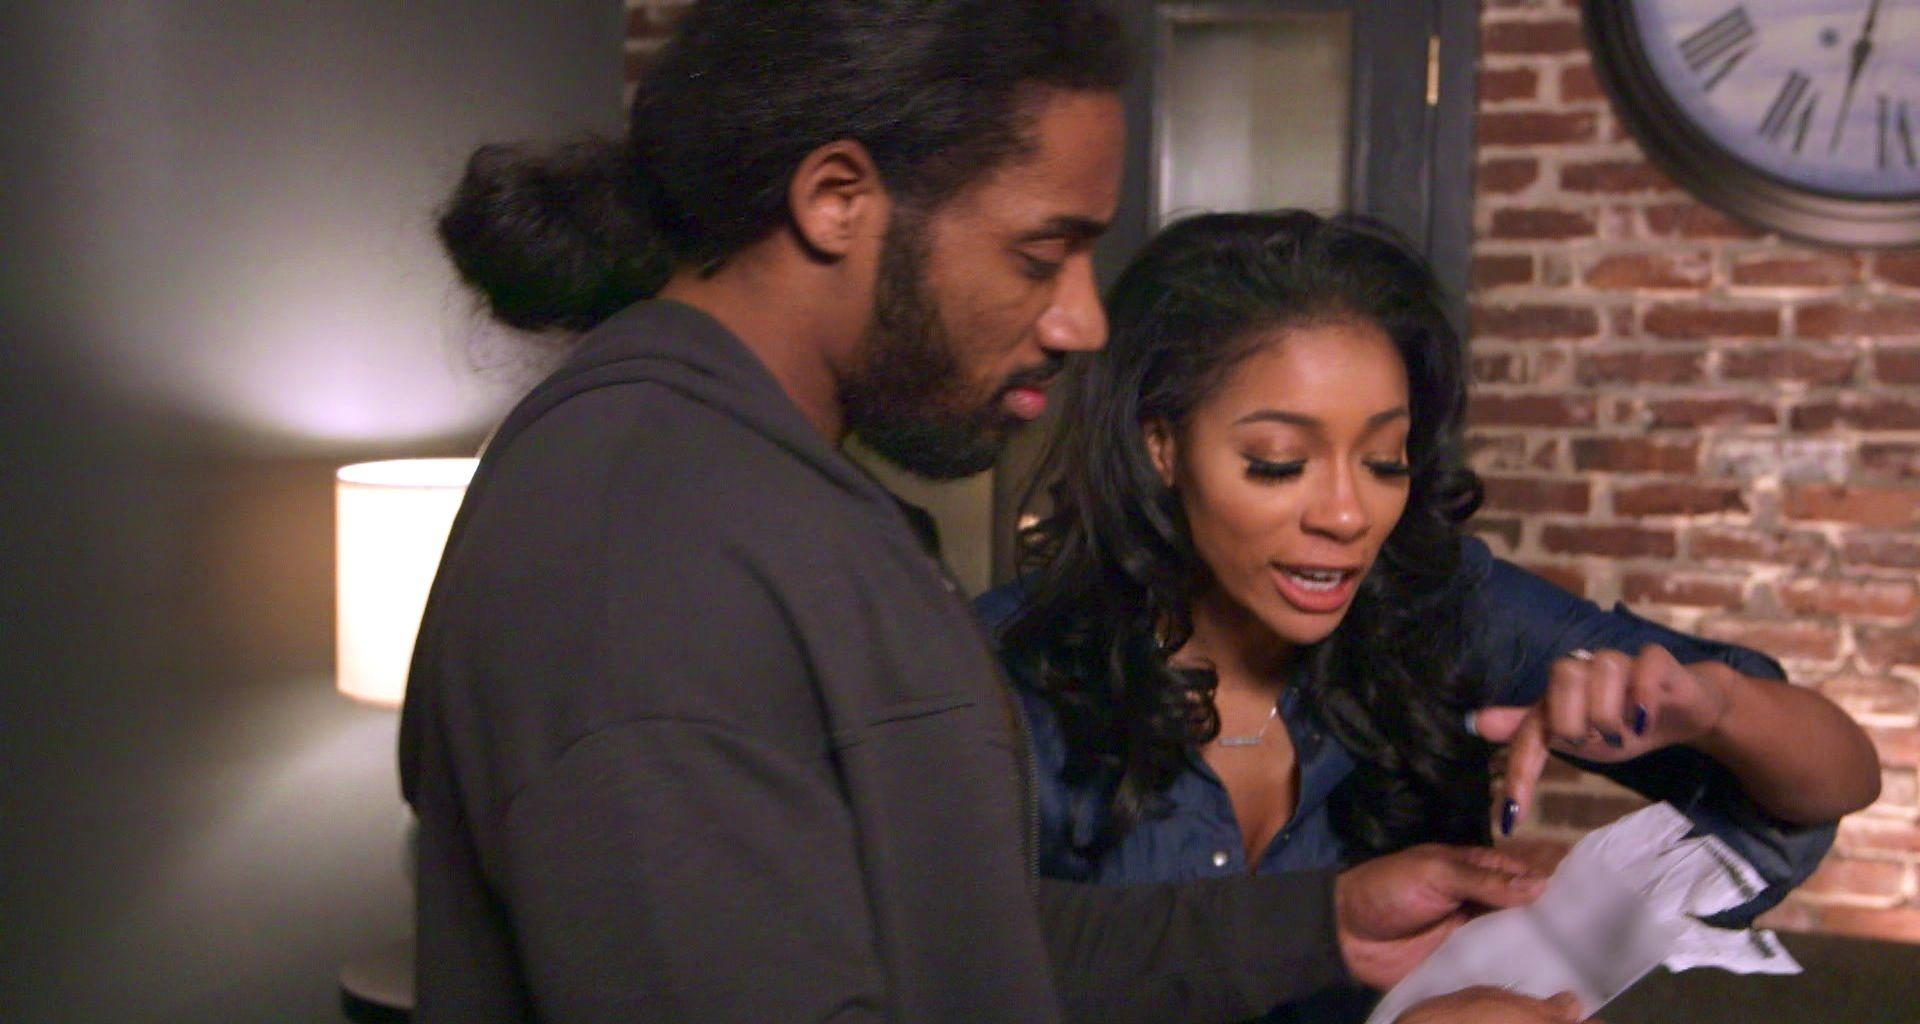 Scrapp Deleon And Tommie Lee Kiss After Being Reunited - Causes Drama Between Her And Rumored Boyfriend Ian Conner!